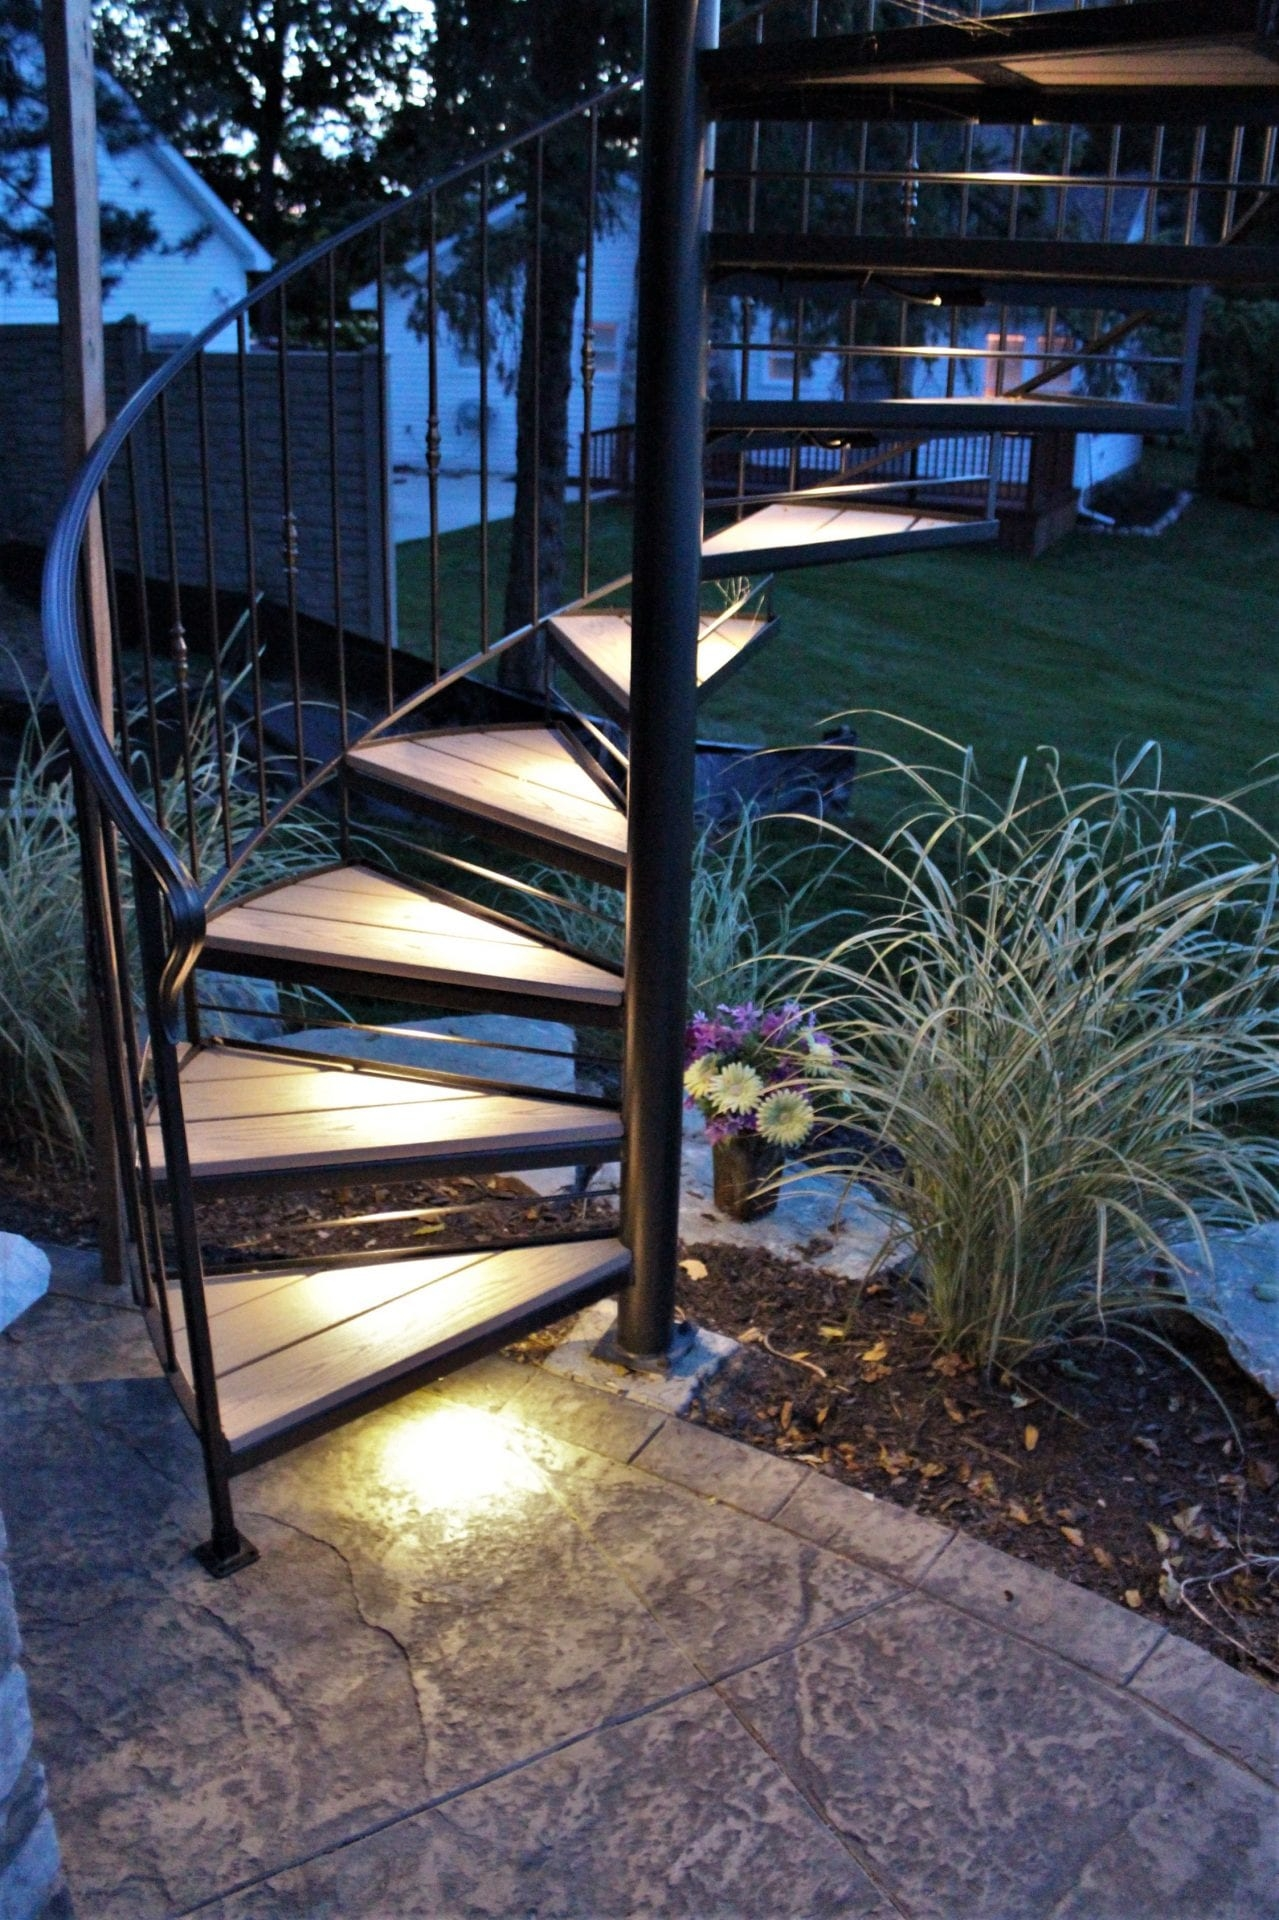 Spiral Stairs For Deck And Patio Great Lakes Metal Fabrication | Steel Spiral Staircase Design | Concrete | Outdoor | Wood | Structural | Cast Iron